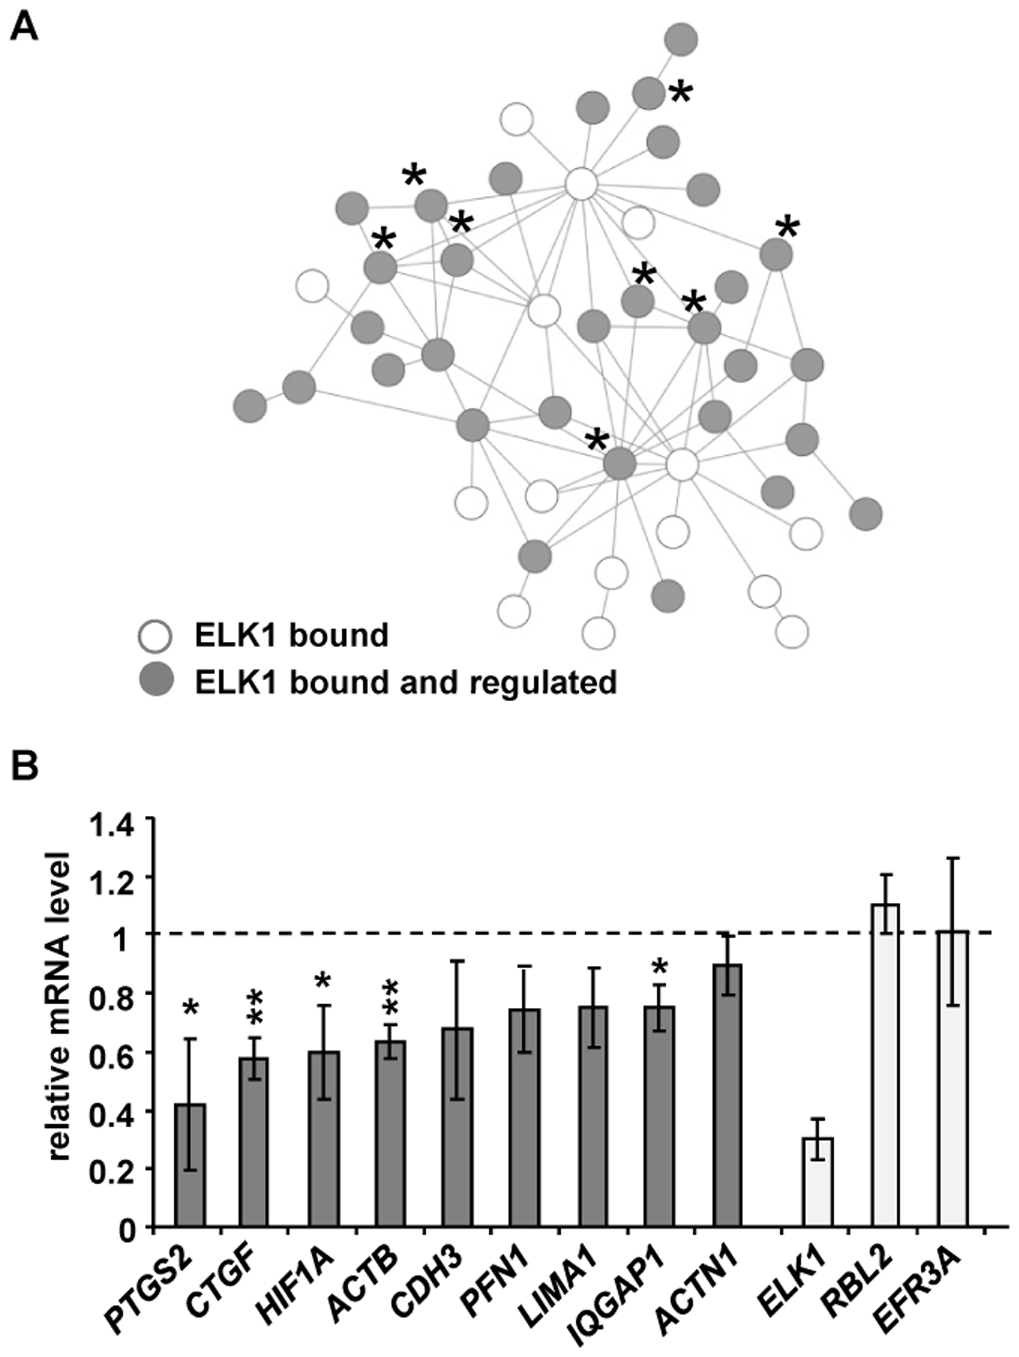 ELK1 controls a network of actin/migration-related genes.